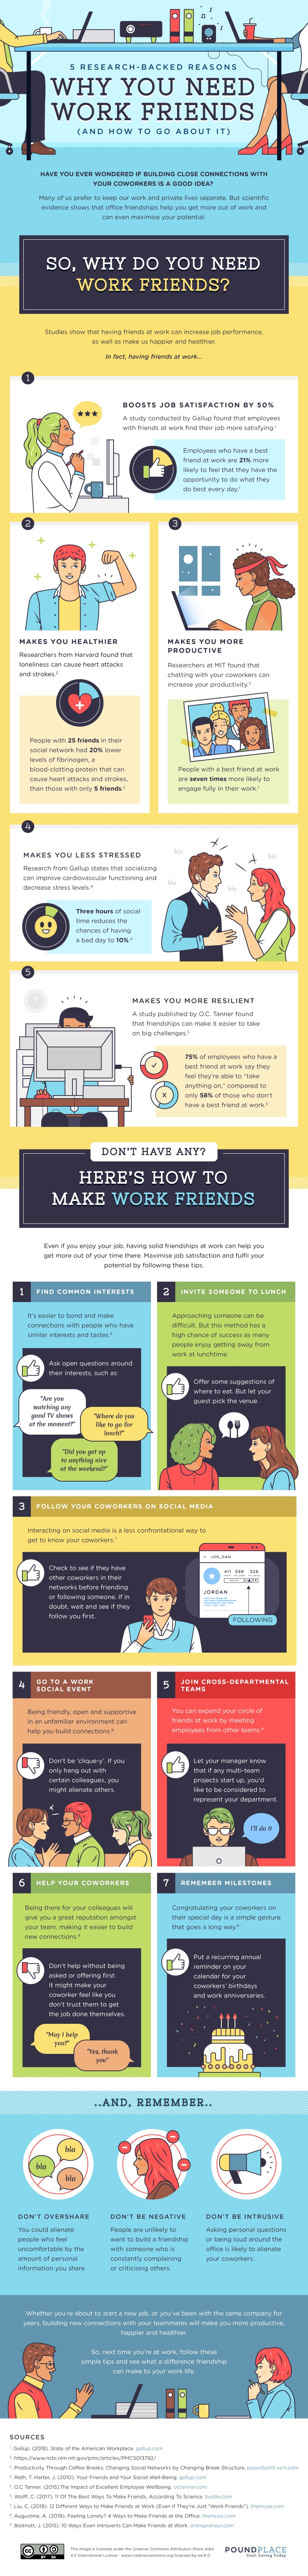 5 Research-Backed Reasons Why You Need Work Friends (And How To Go About It)